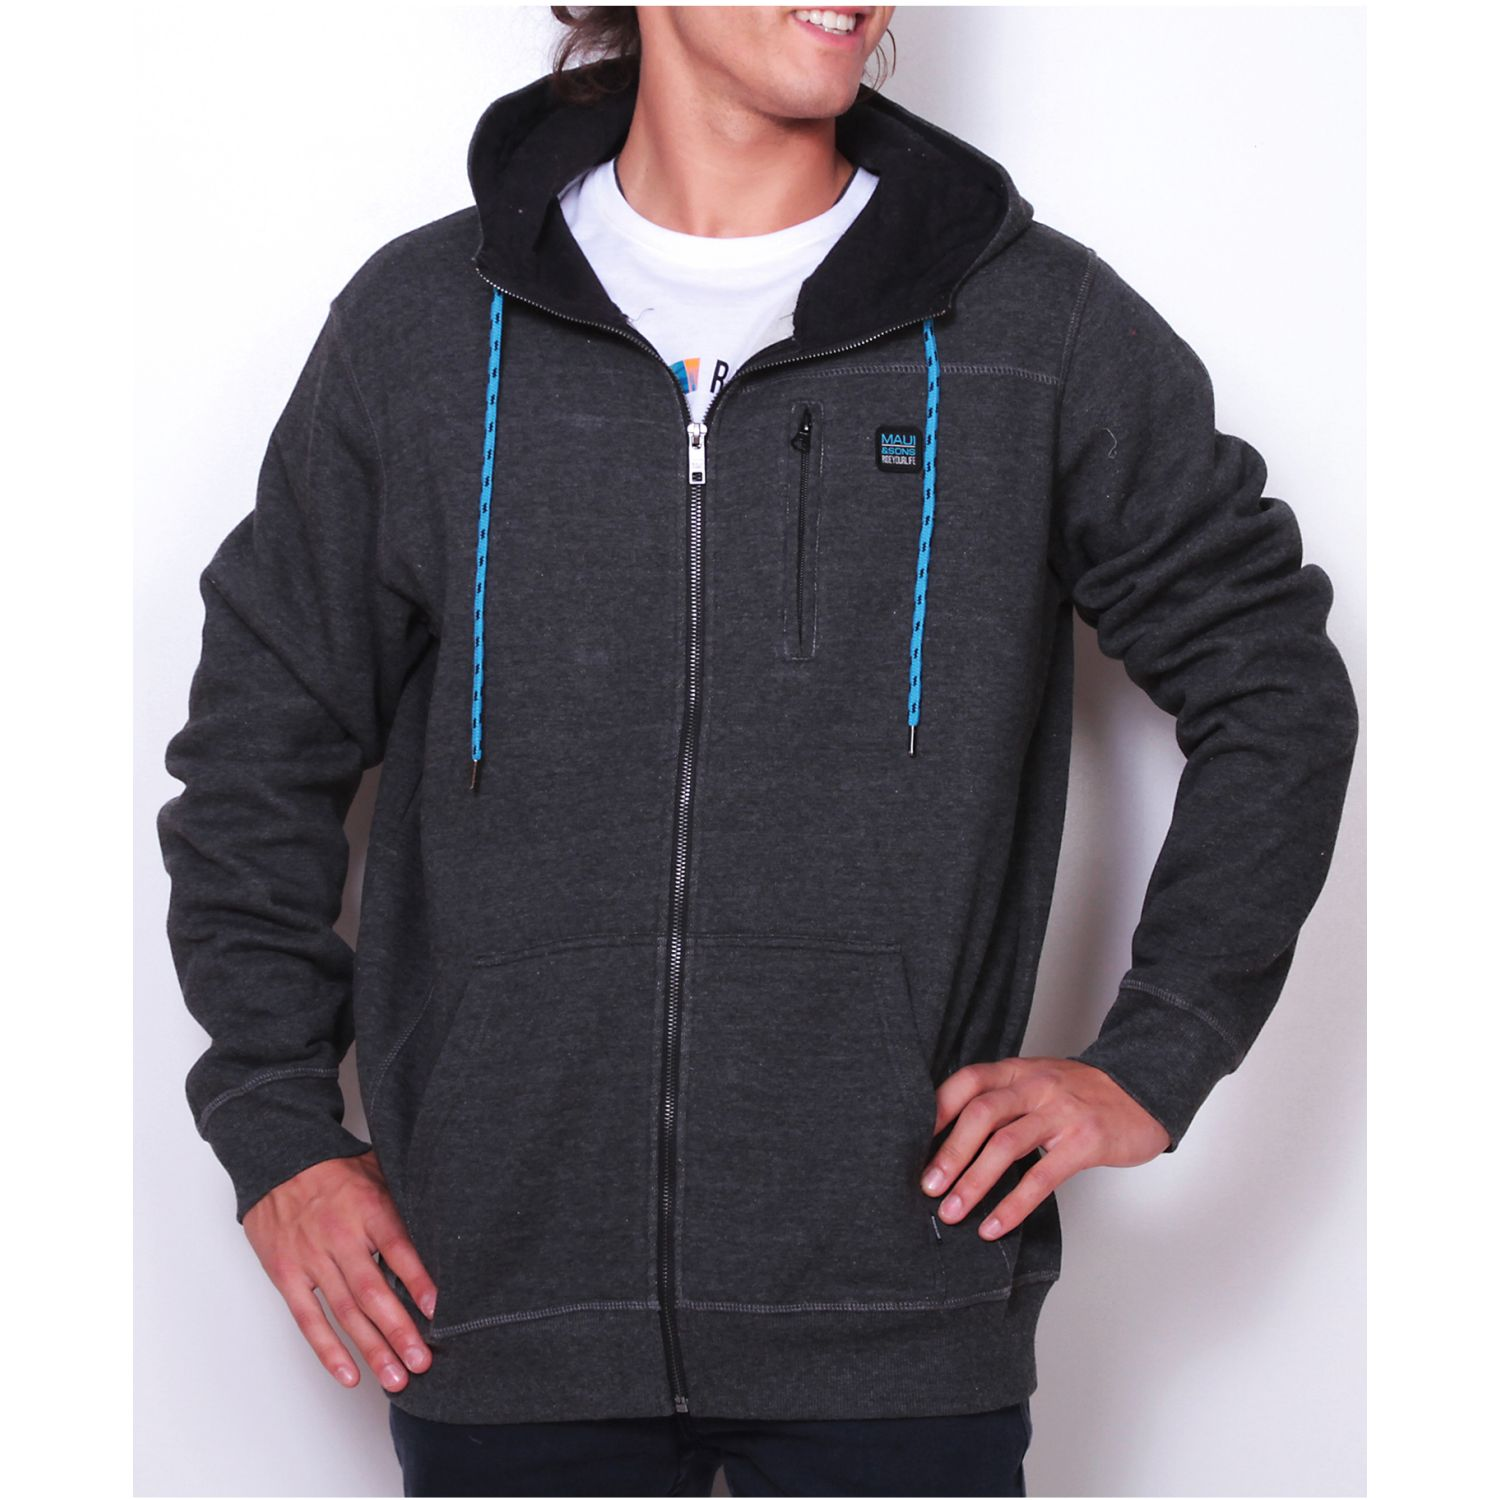 MAUI AND SONS poleron 5o203-mi19 fzip liso Plomo Hoodies y Sweaters Fashion